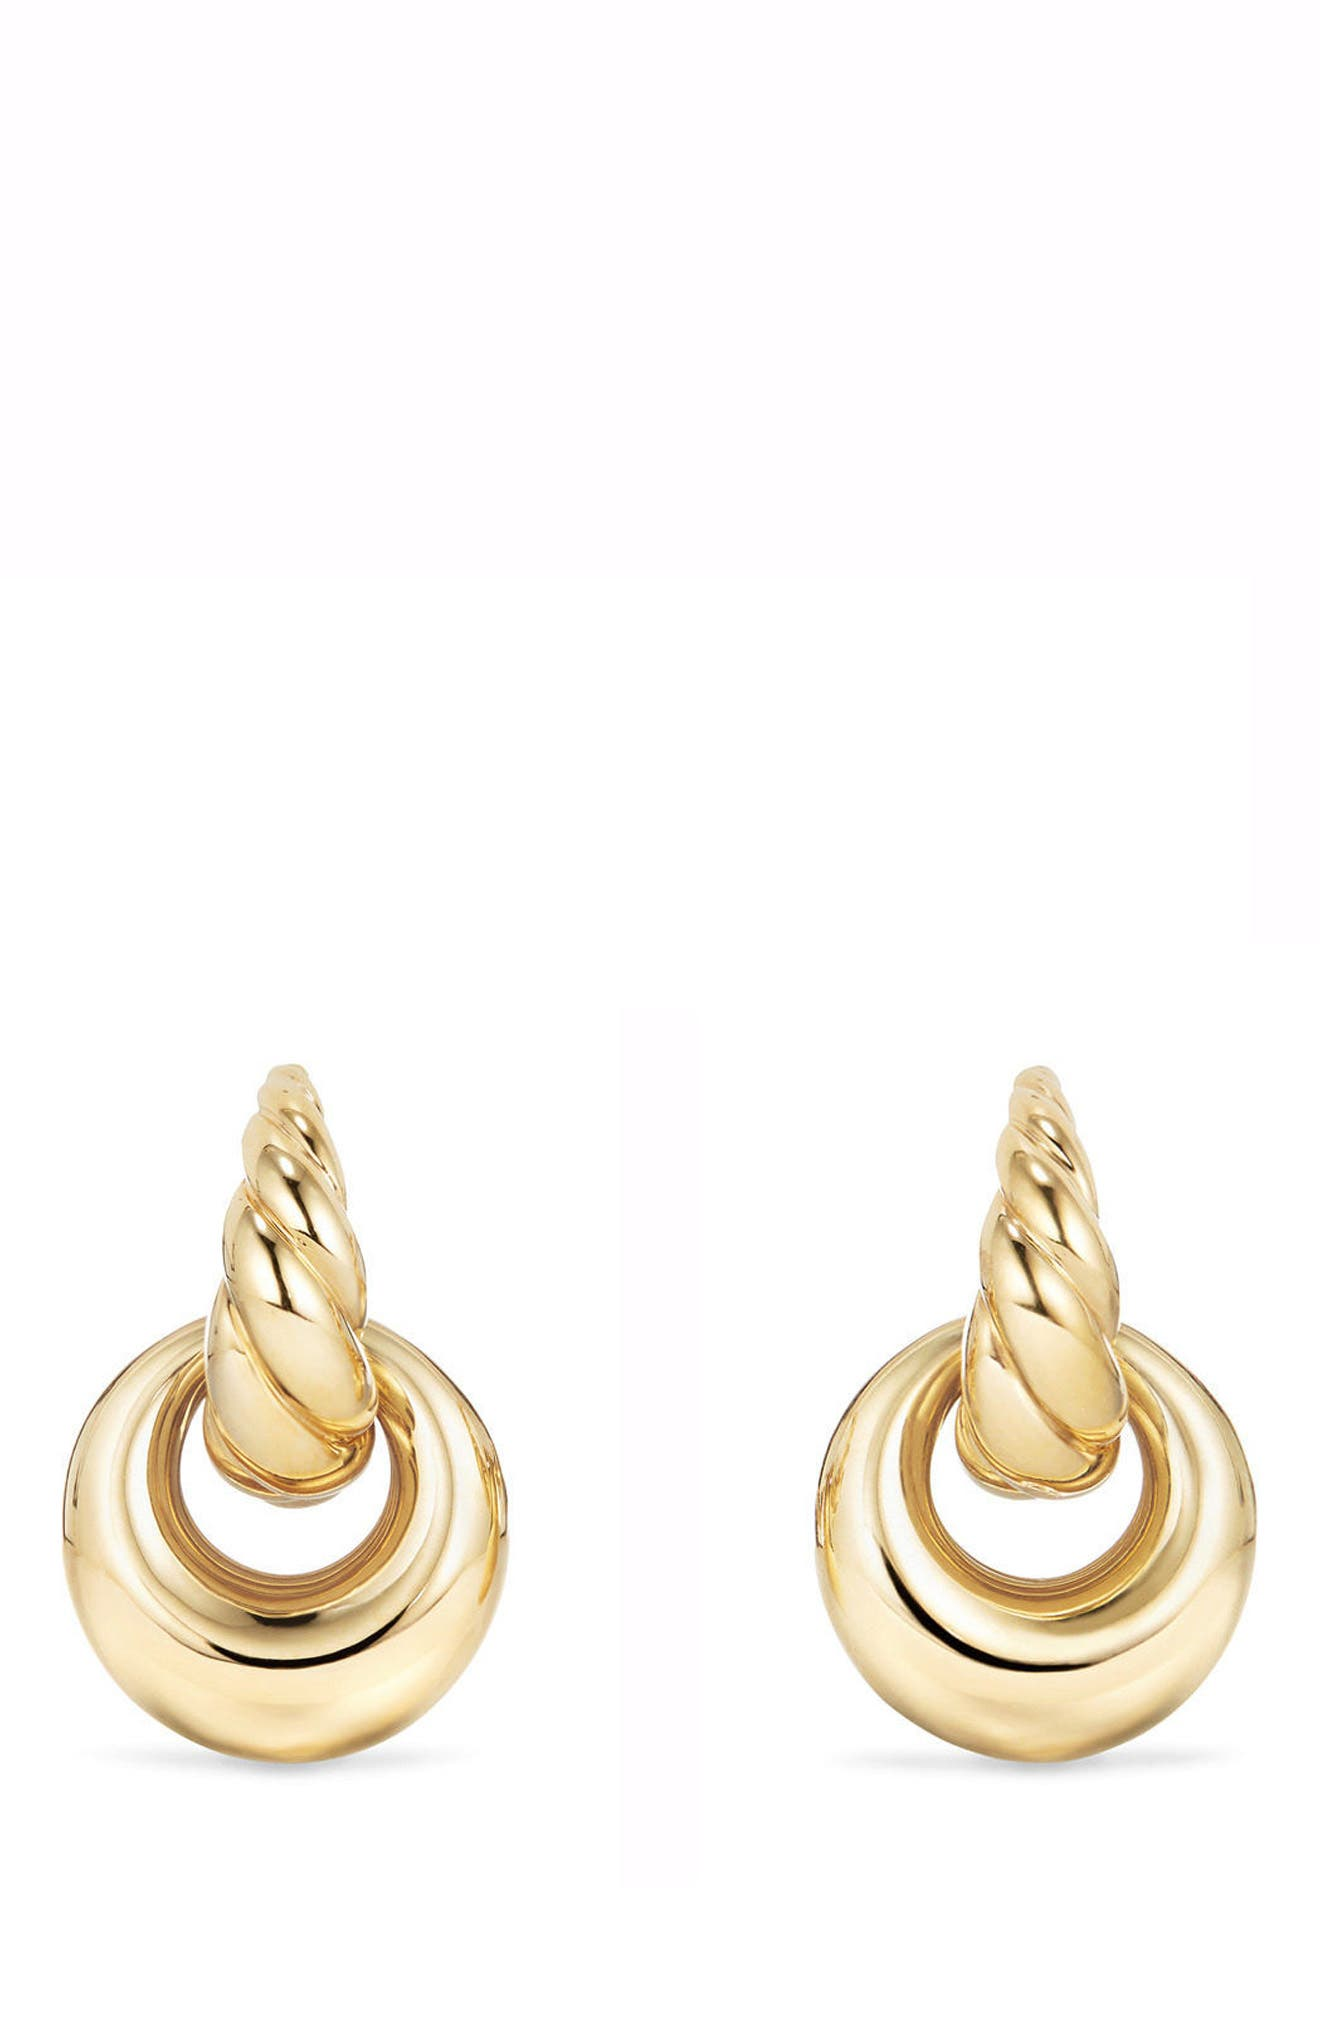 Pure Form<sup>®</sup> Drop Earrings in 18K Yellow Gold,                             Main thumbnail 1, color,                             YELLOW GOLD